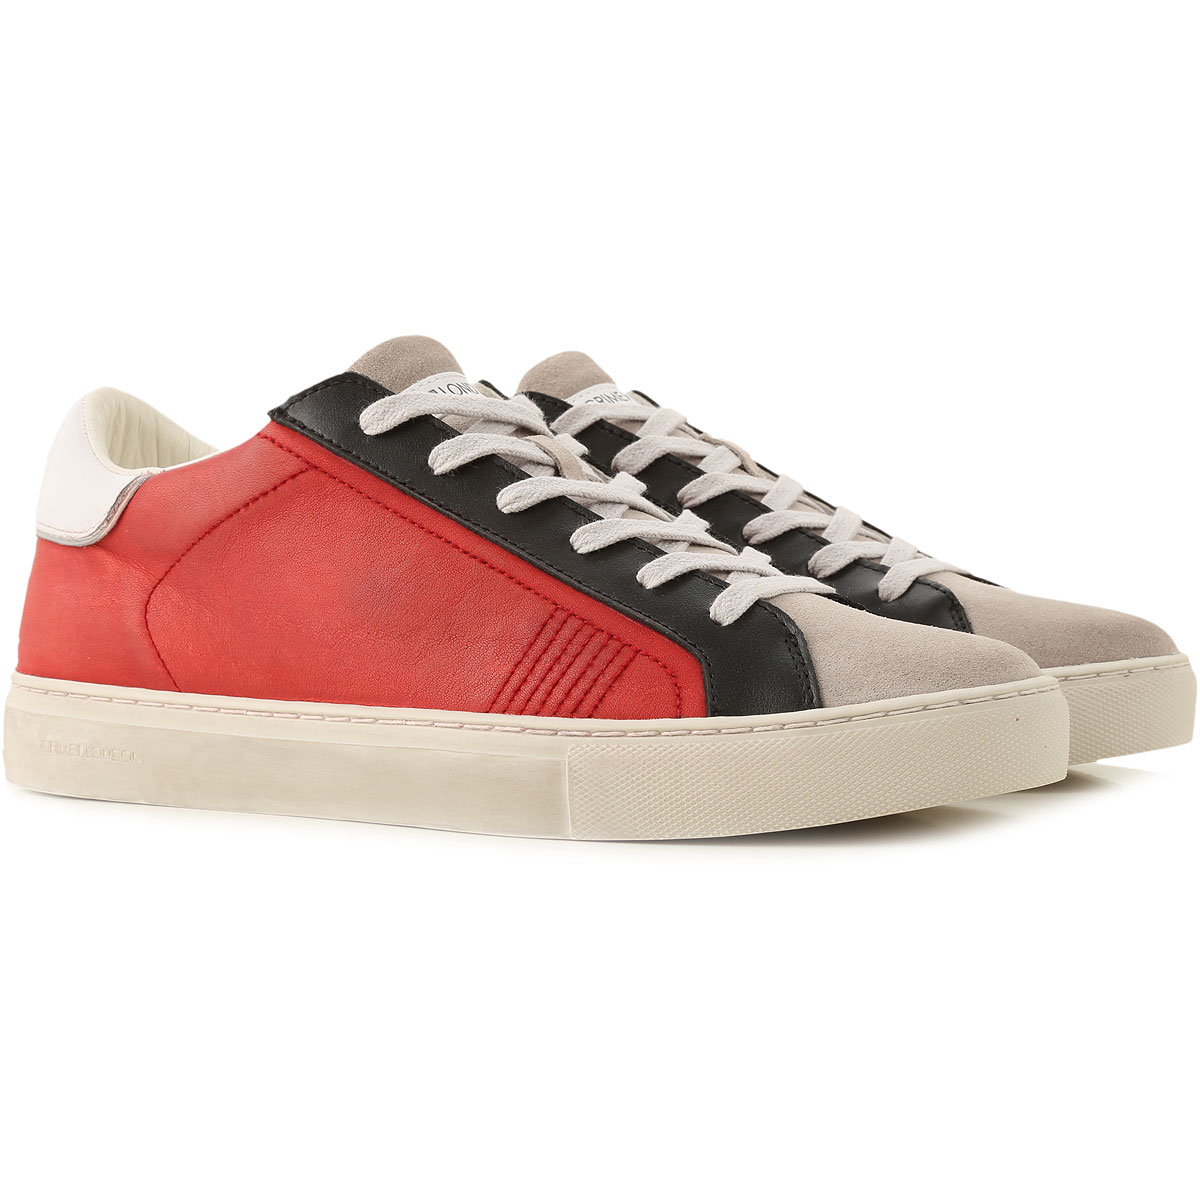 Crime Sneakers for Men On Sale, Dark Amaranth Red, Leather, 2019, 10 10.5 7.5 8 9